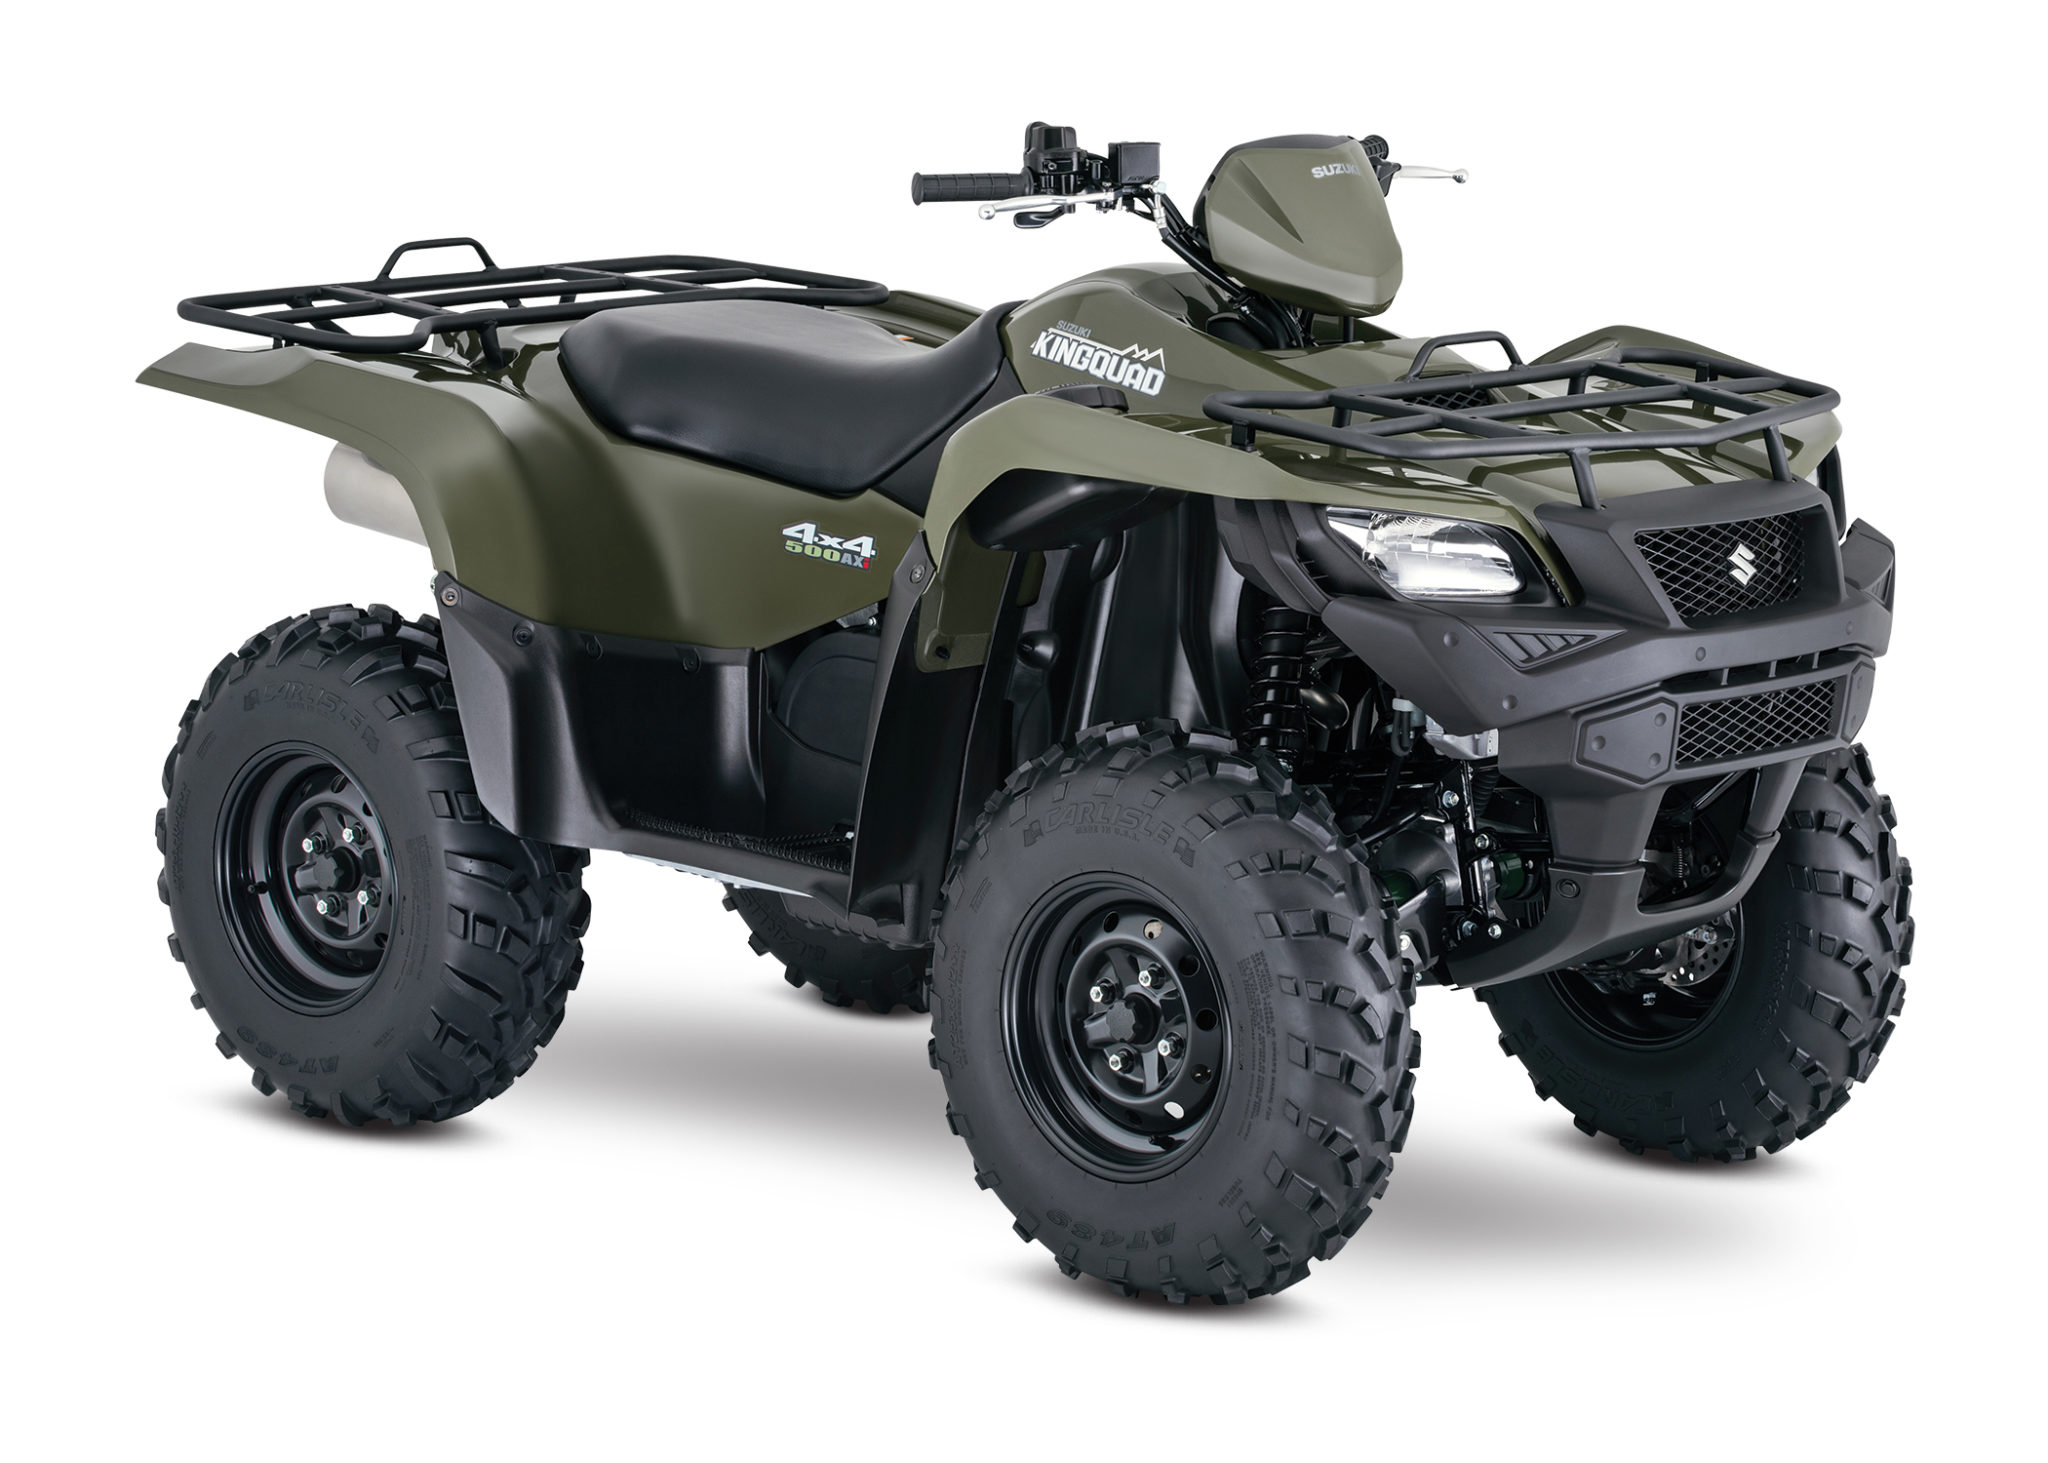 2018 suzuki king quad release date.  suzuki the 2018 suzuki kingquad 500axiu0027s fuel injected 493cc liquidcooled  engine provides exceptional performance throughout the powerband with a strong mid to  and suzuki king quad release date 1